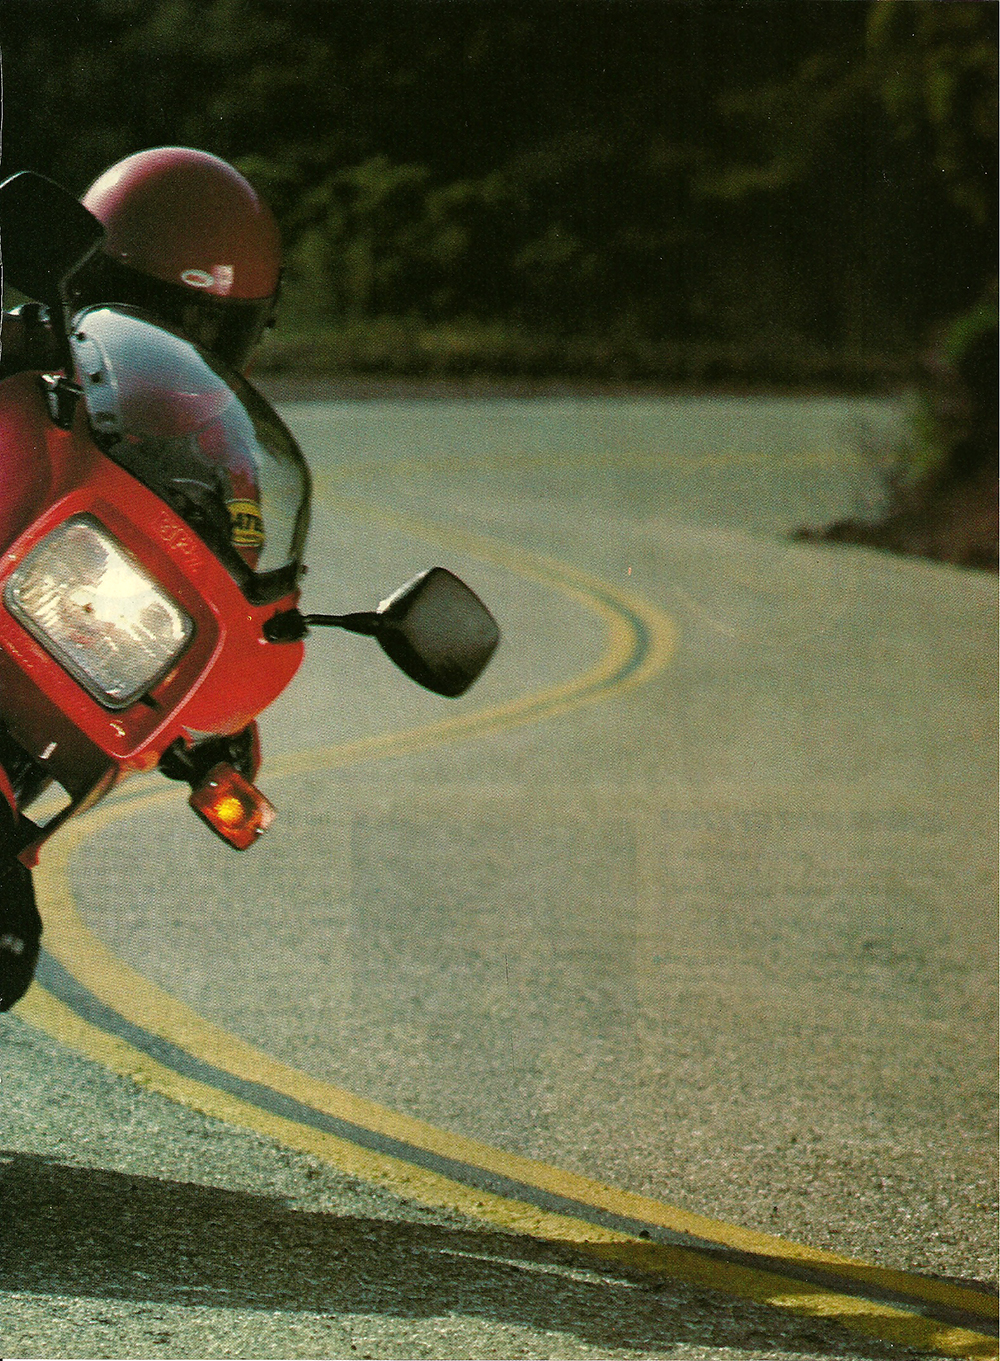 1983 Kawasaki GPz 750 road test 2.jpg